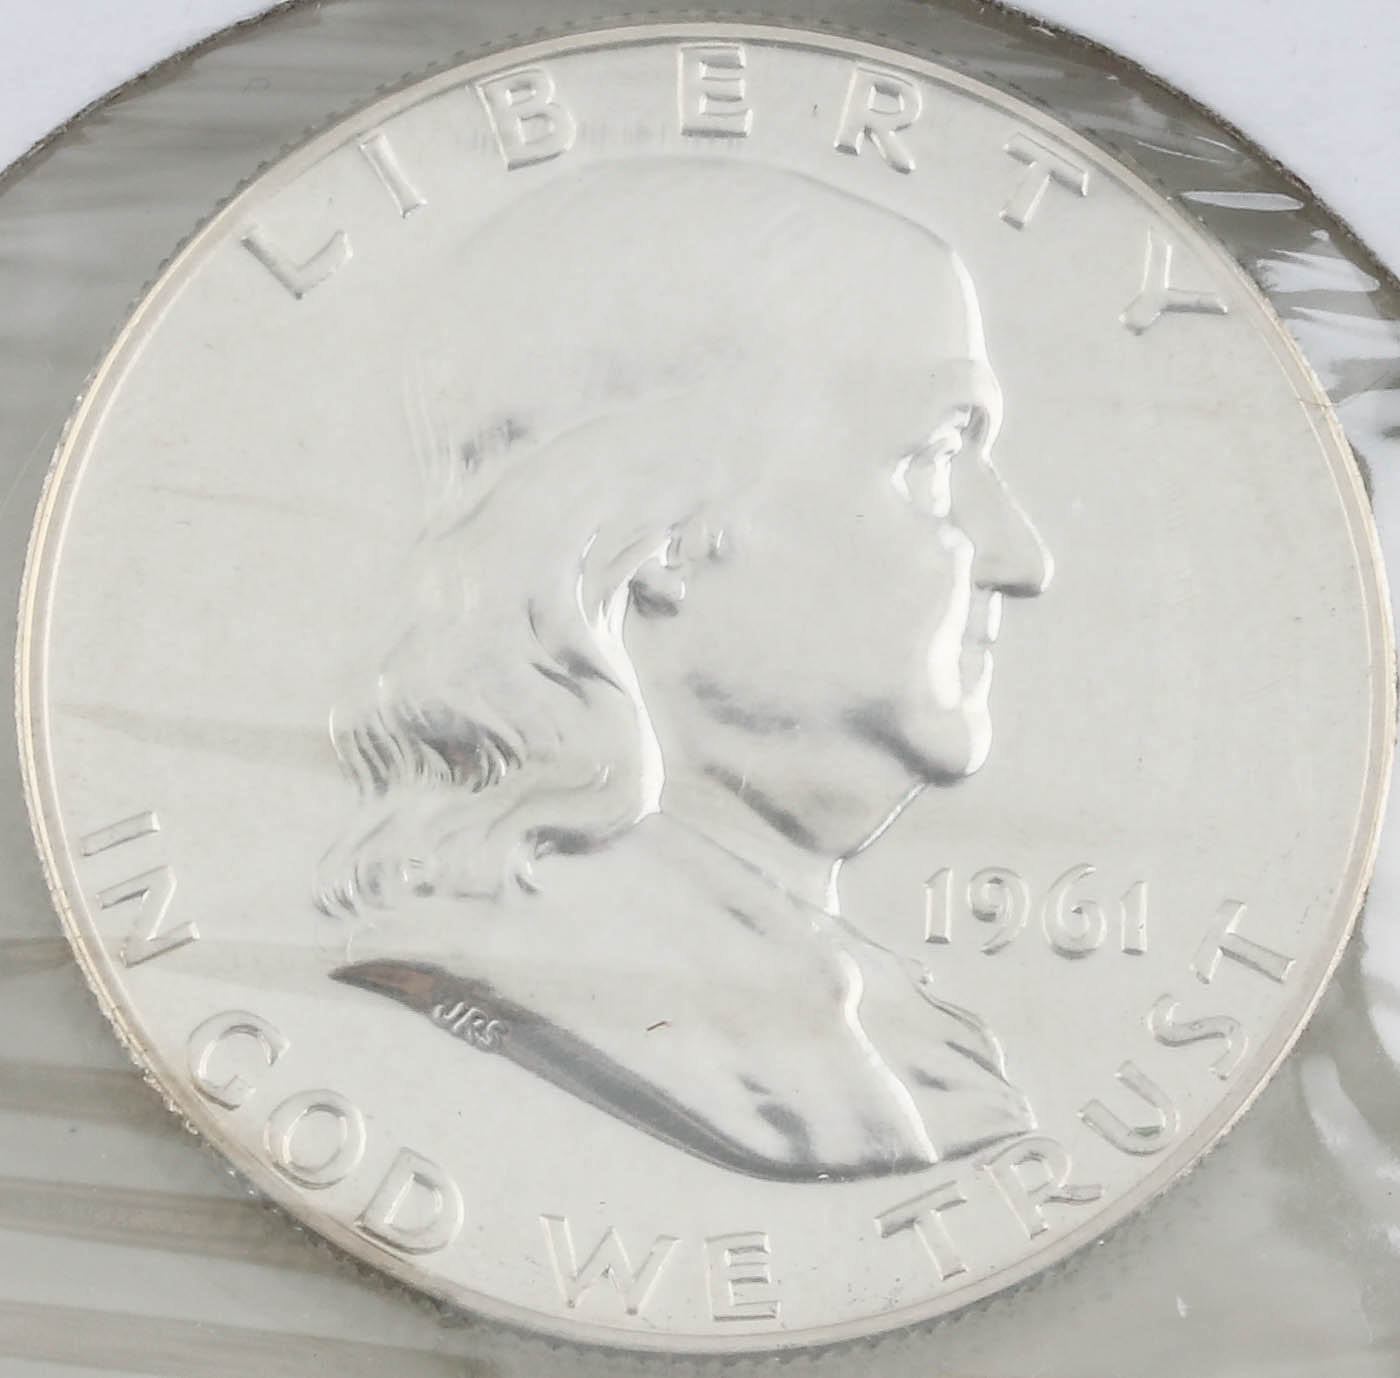 1961 Franklin Silver Half Dollar Proof Coin